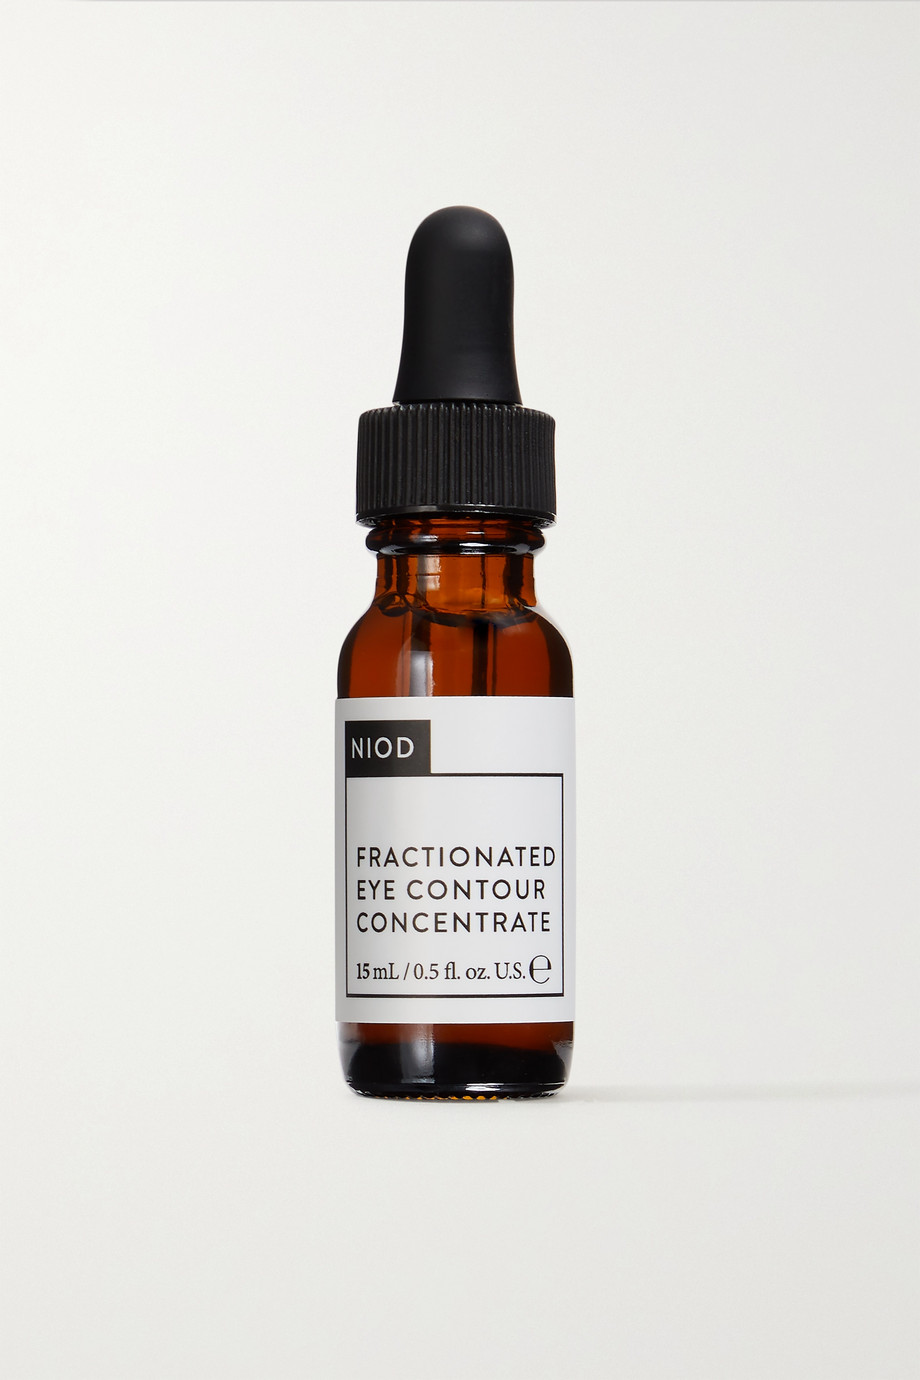 NIOD Fractionated Eye Contour Concentrate, 15ml